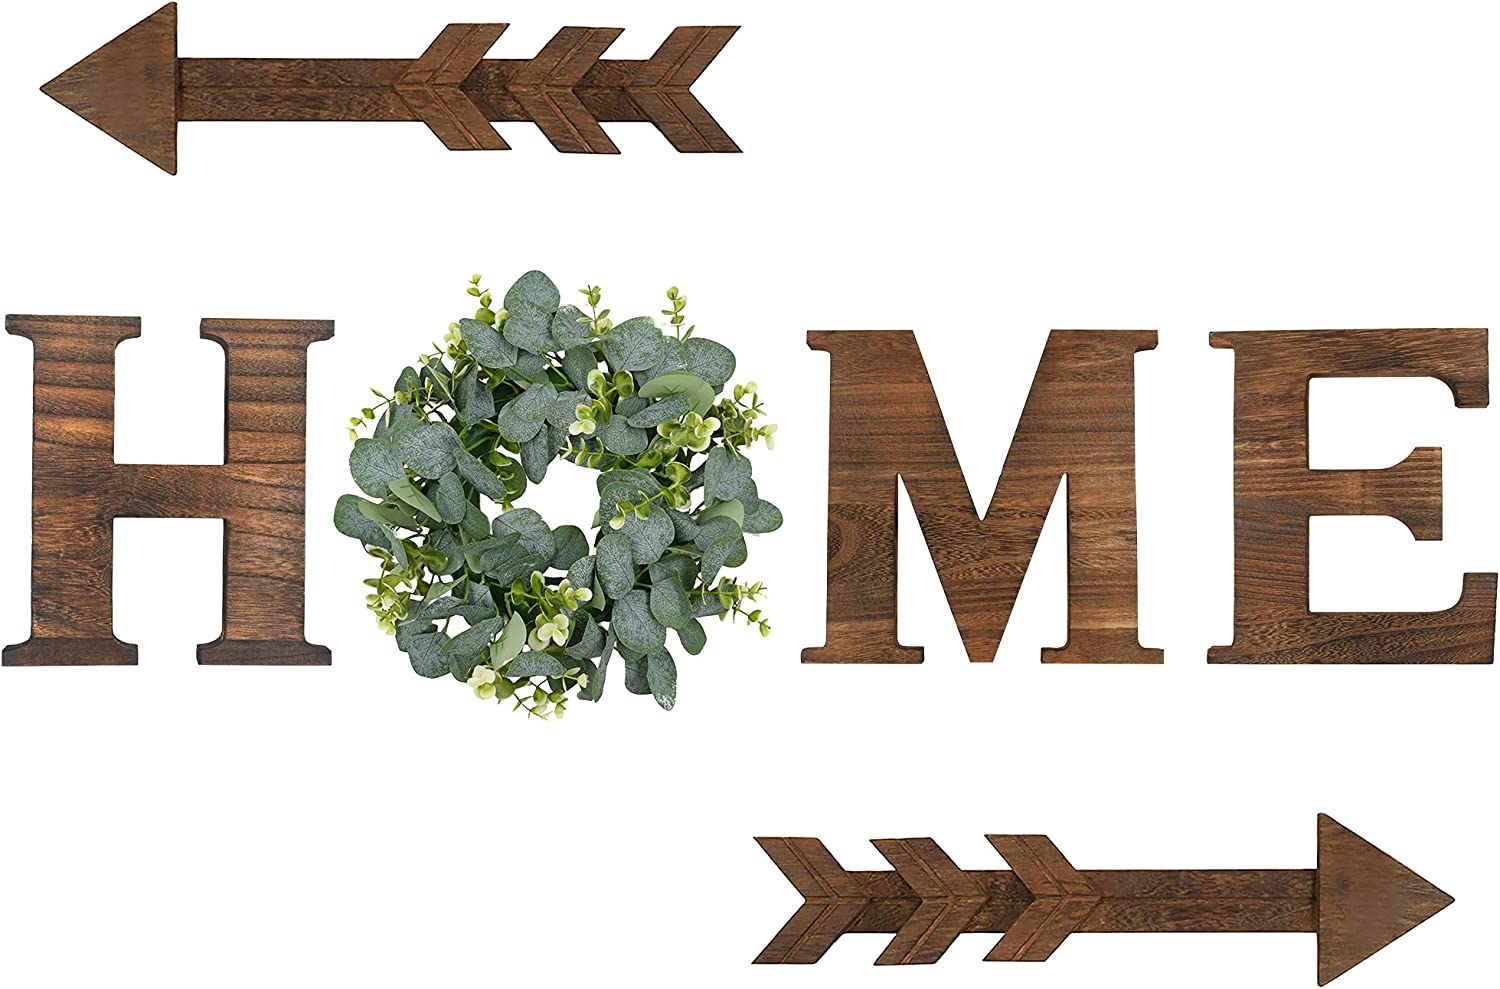 Wood Home Sign Wall Hanging Decor with Artificial Eucalyptus Wreath Rustic Housewarming Decoration, Decorative Wooden Letters Wall Art for Living Room House